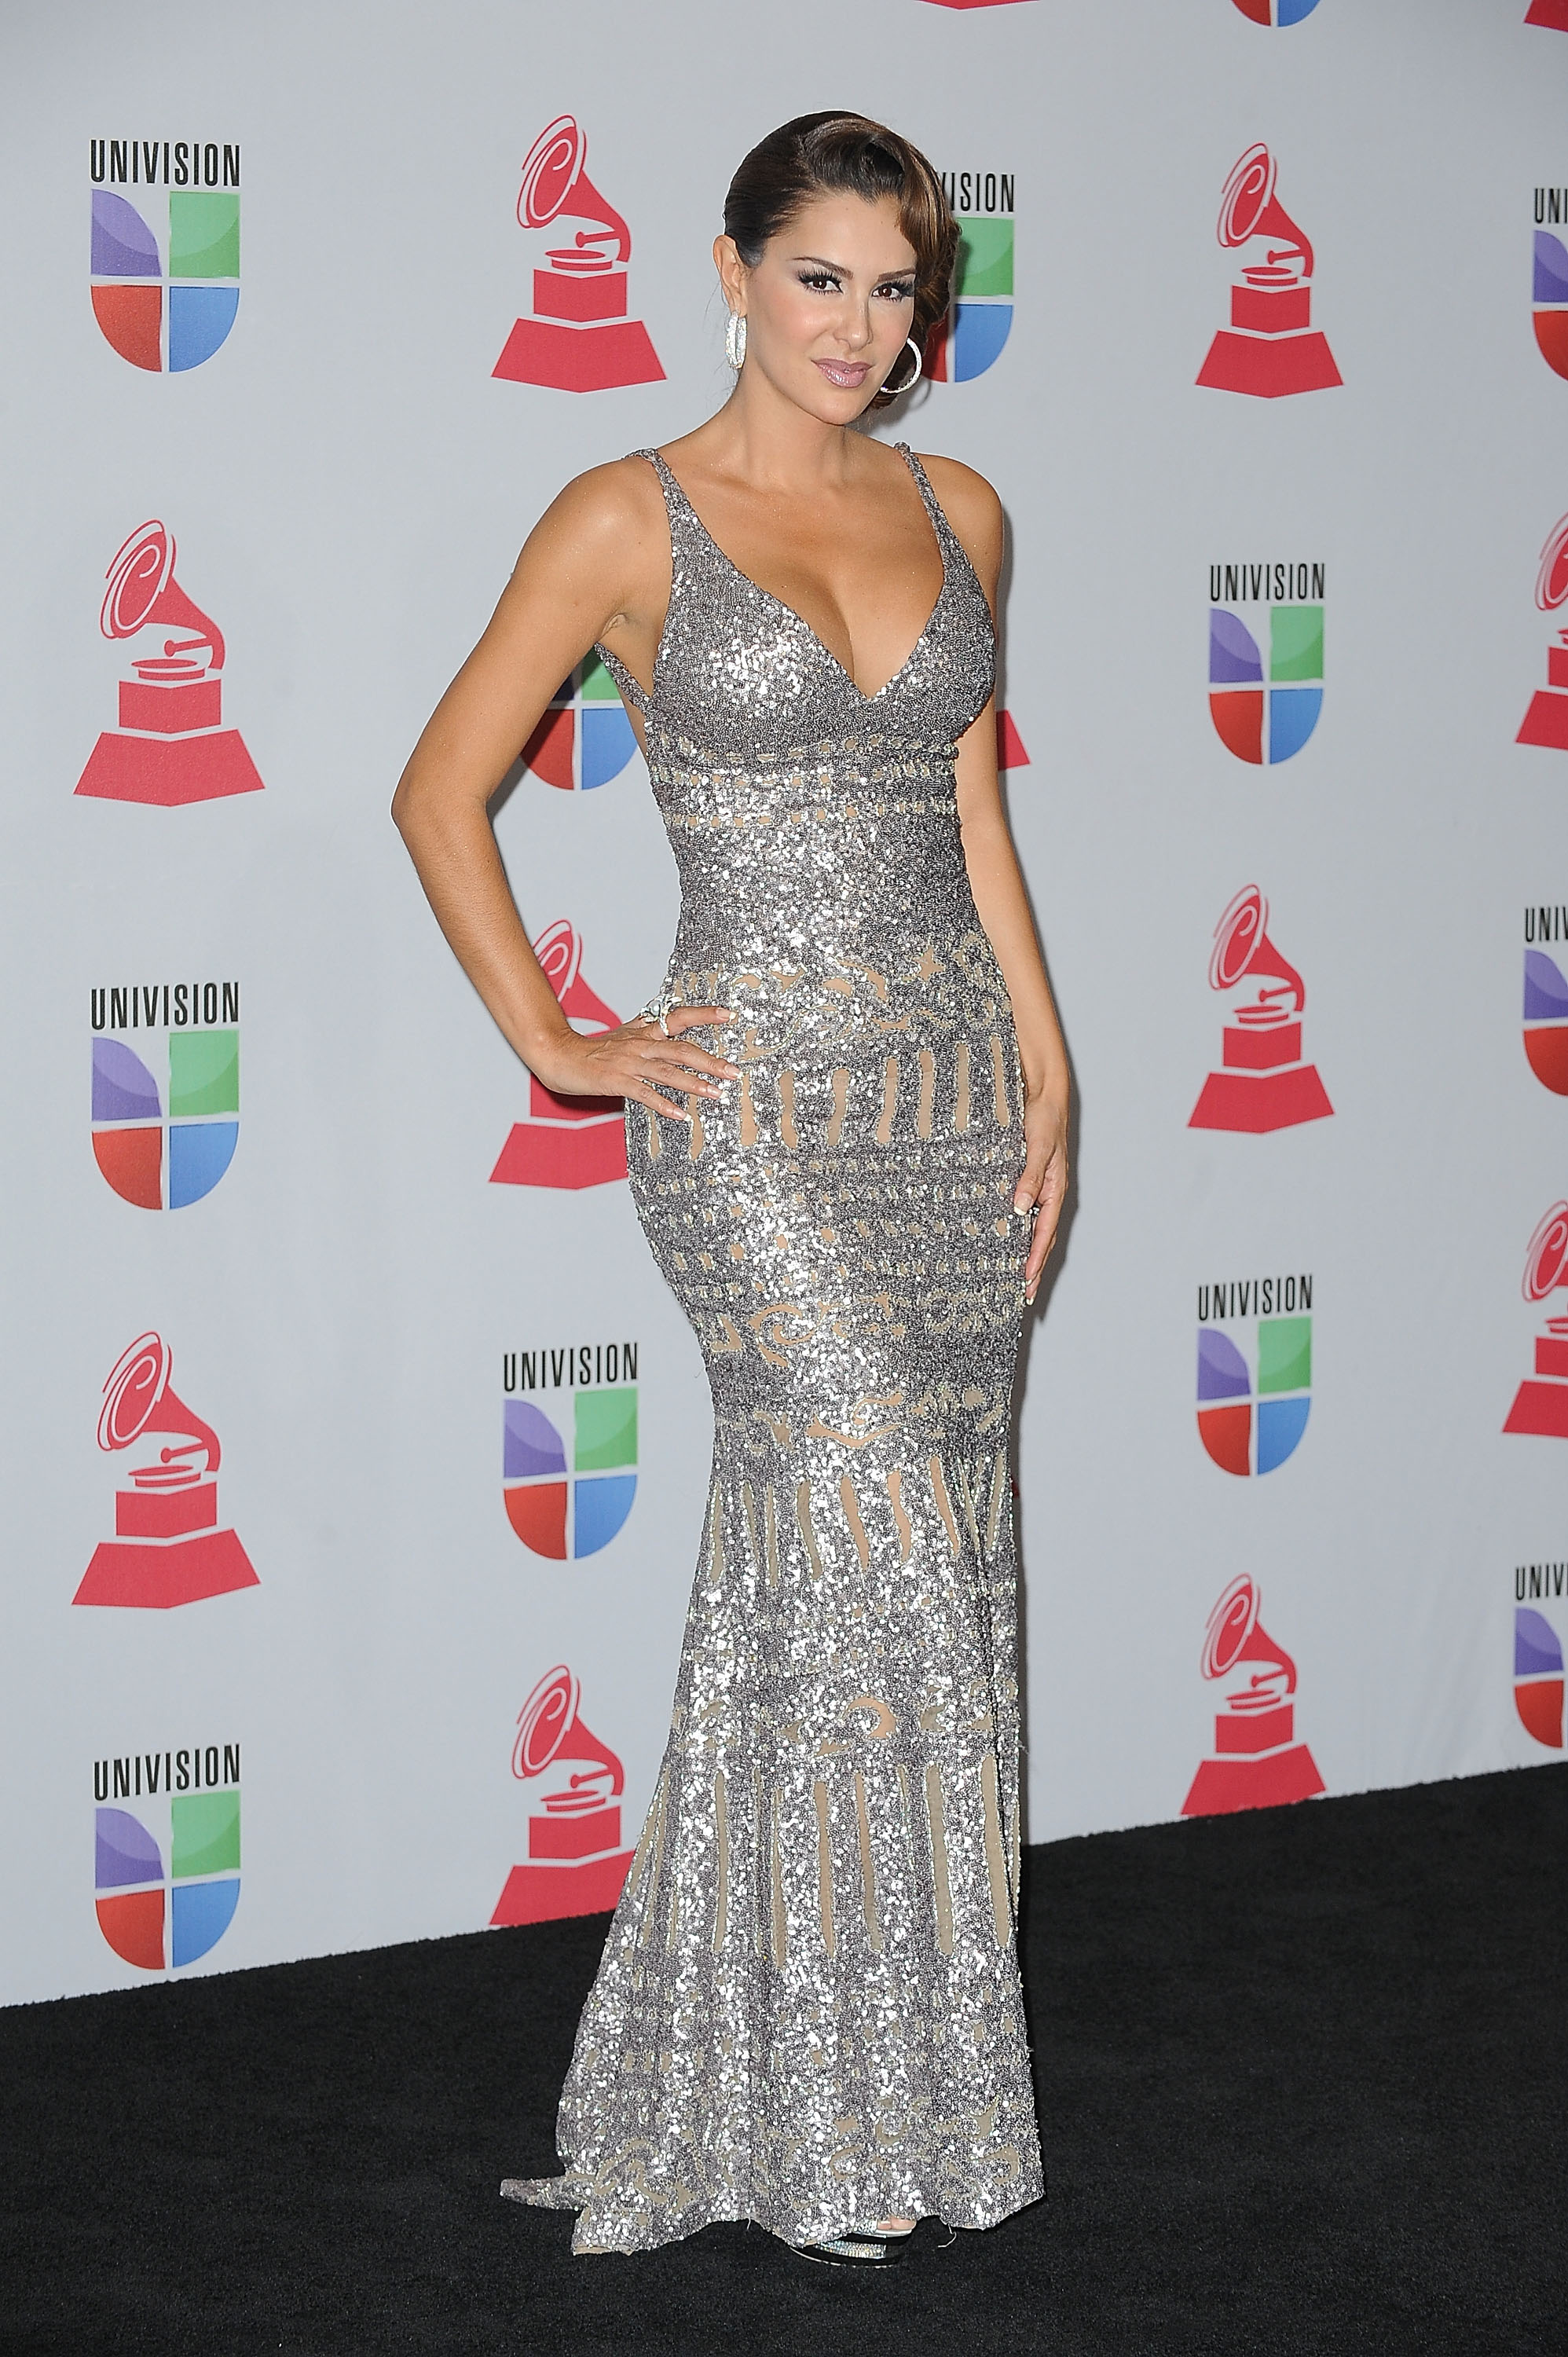 Celebrities arrive backstage during the The 13th Annual Latin Grammy Awards at the Mandalay Bay Resort and Casino in Las Vegas, Nevada. Pictured: Ninel Conde Ref: SPL460014  151112   Picture by: CFI / Splash News Splash News and Pictures Los Angeles:310-821-2666 New York:	212-619-2666 London:	870-934-2666 photodesk@splashnews.com